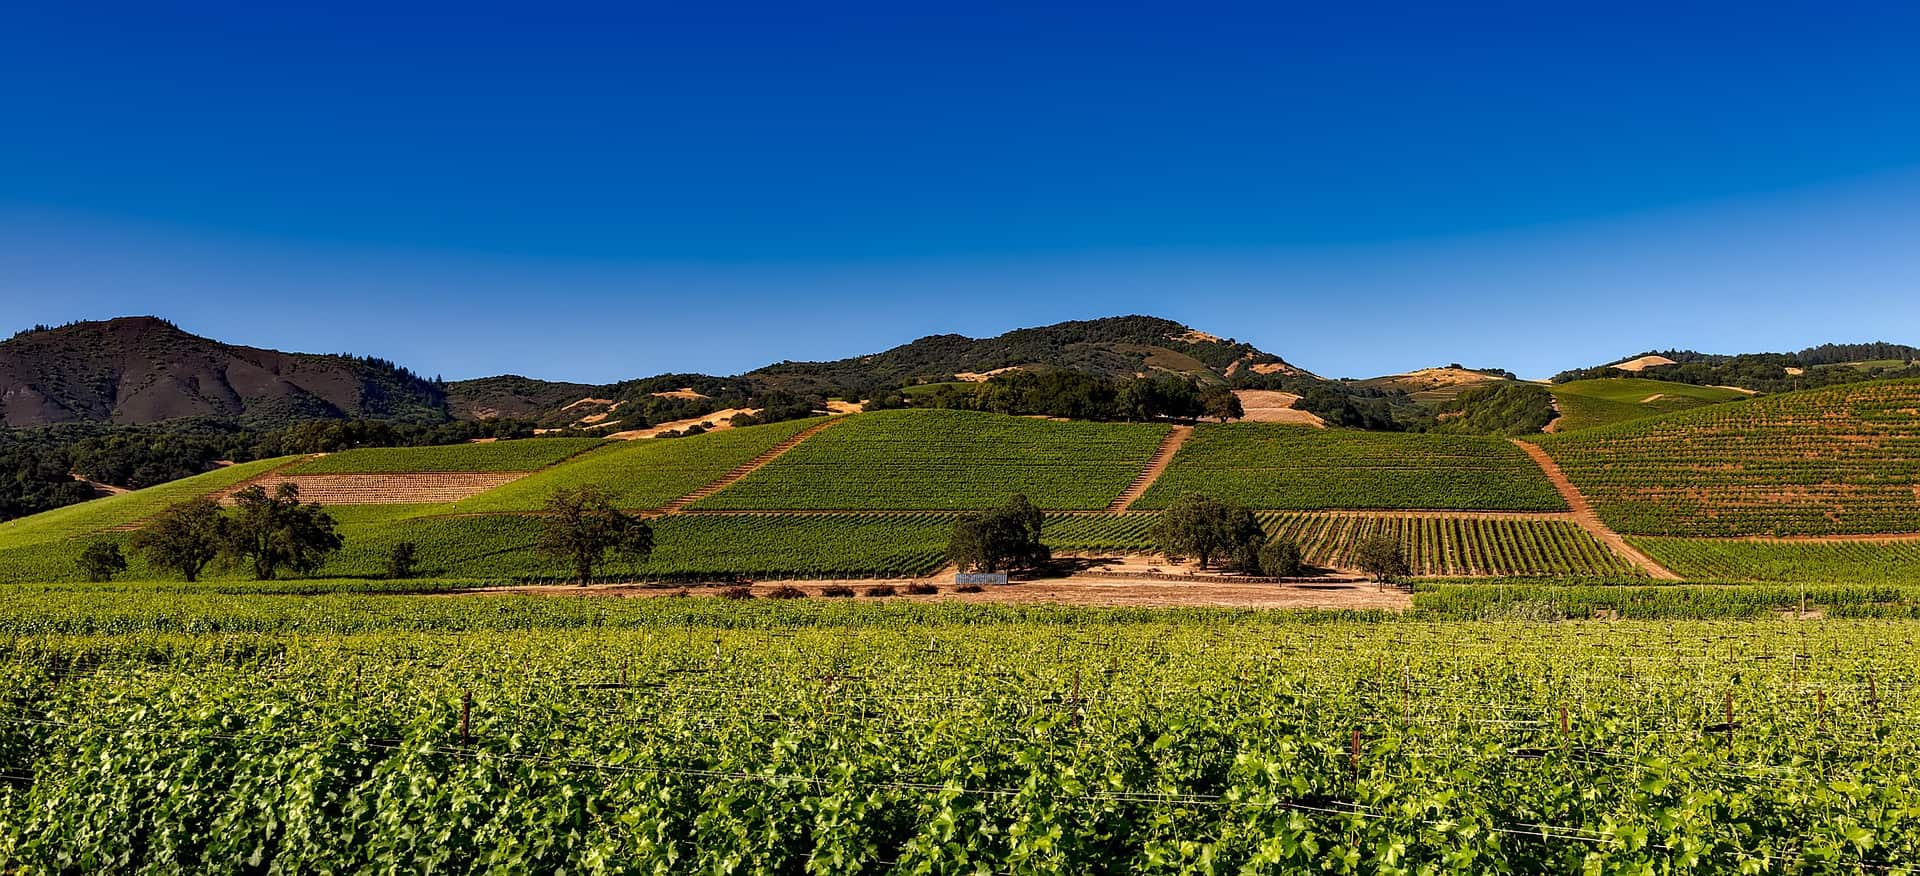 3 Perfect Days in Napa Valley- A Weekend Road Trip Guide